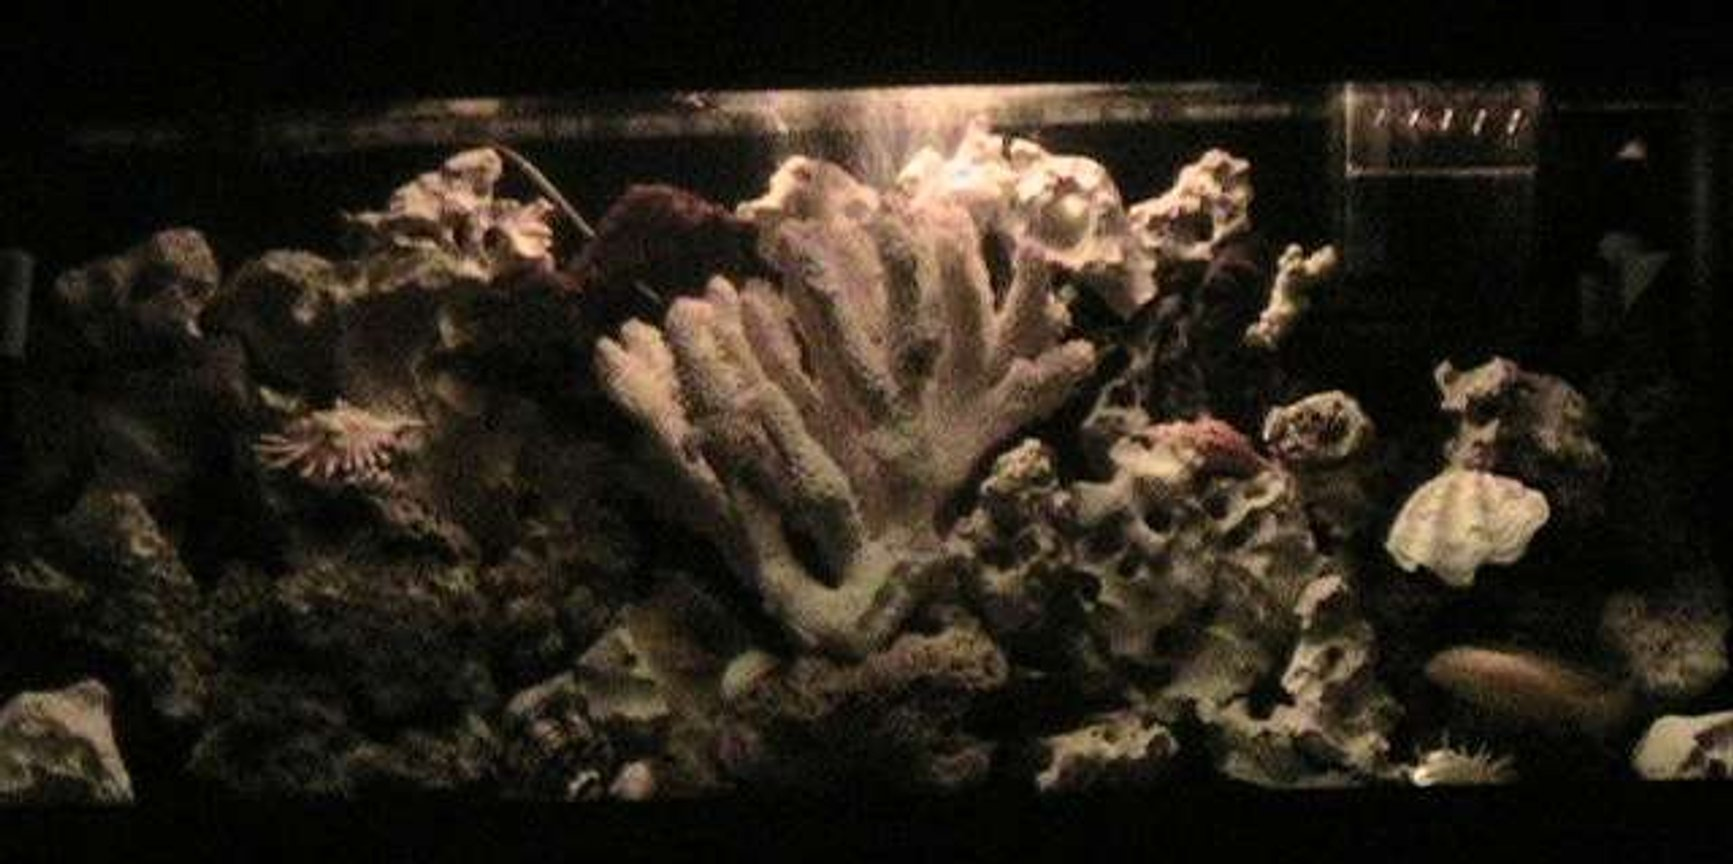 55 gallons freshwater fish tank (mostly fish and non-living decorations) - nite light pic